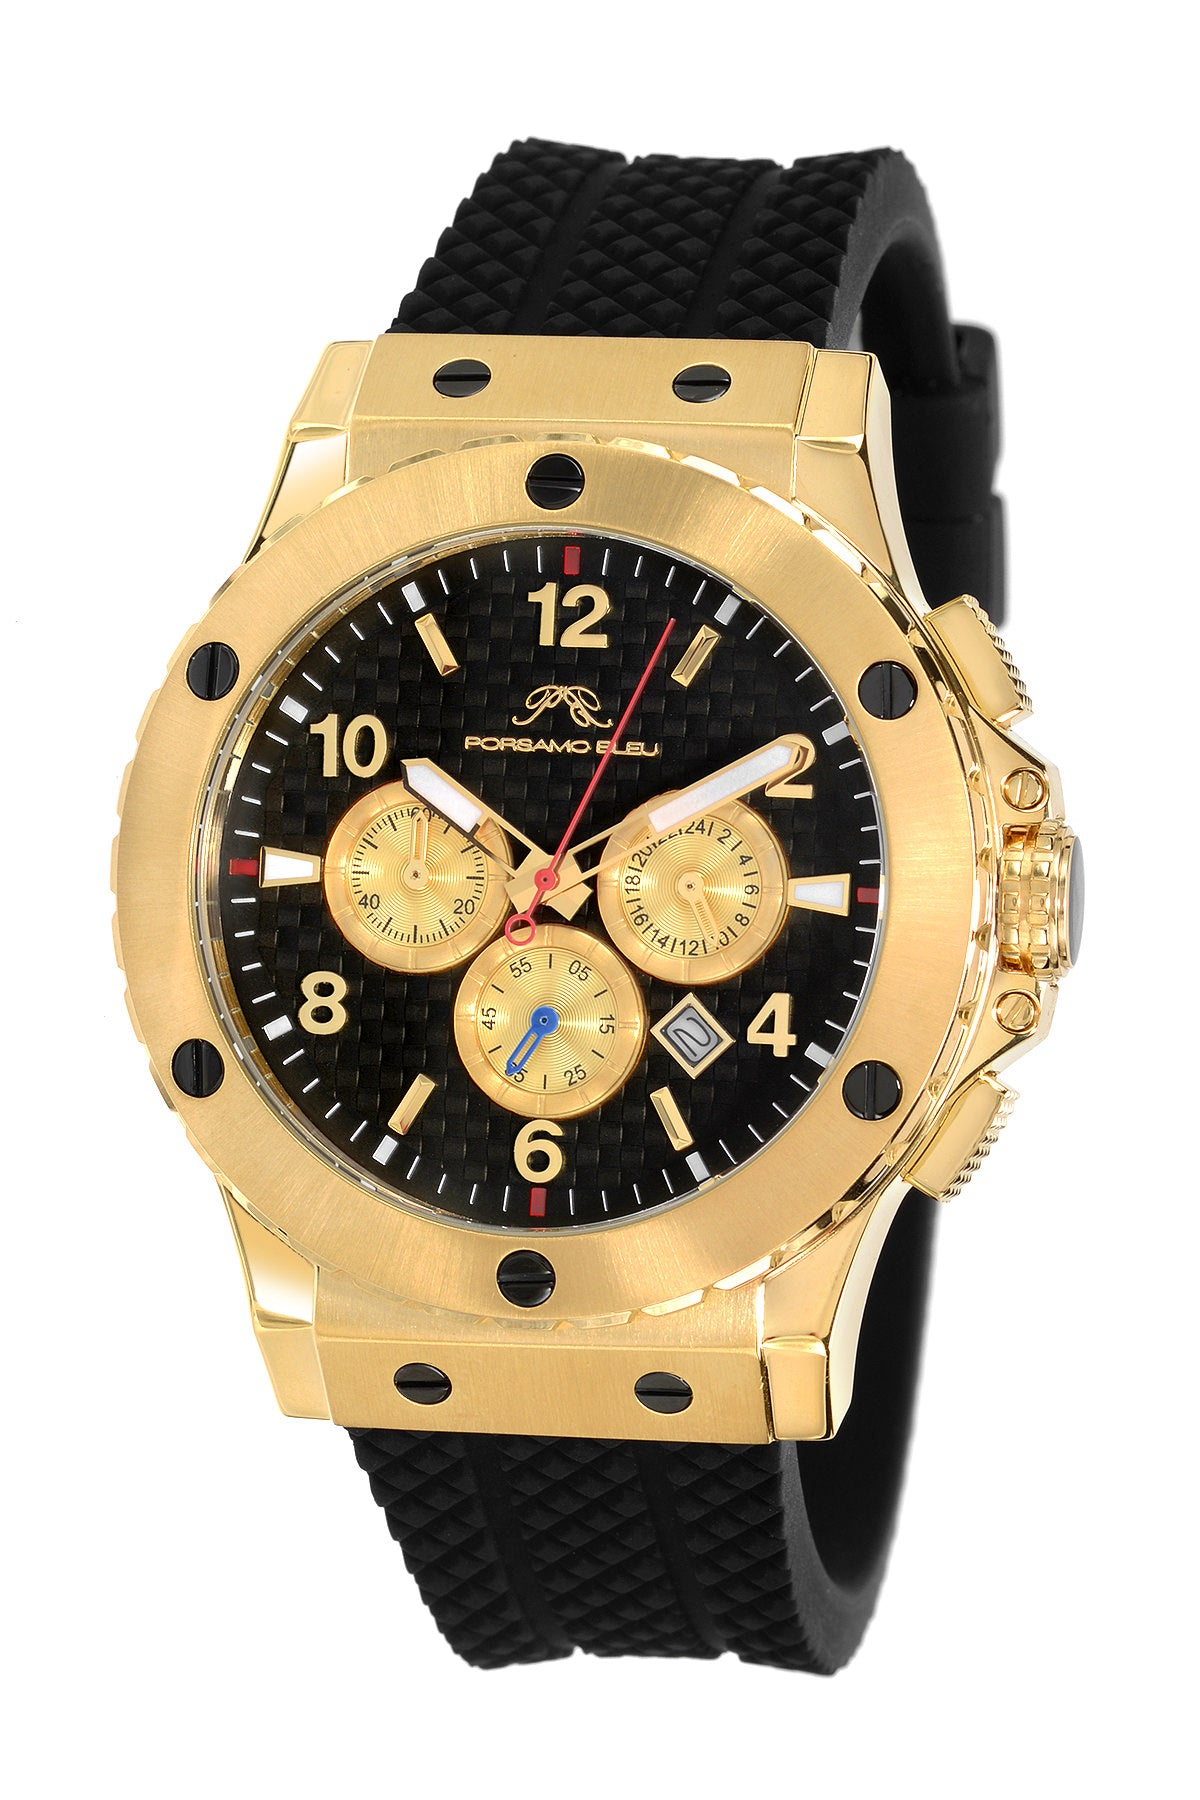 Porsamo Bleu Marcus luxury chronograph men's watch, silicone strap, gold, black 652AMAR